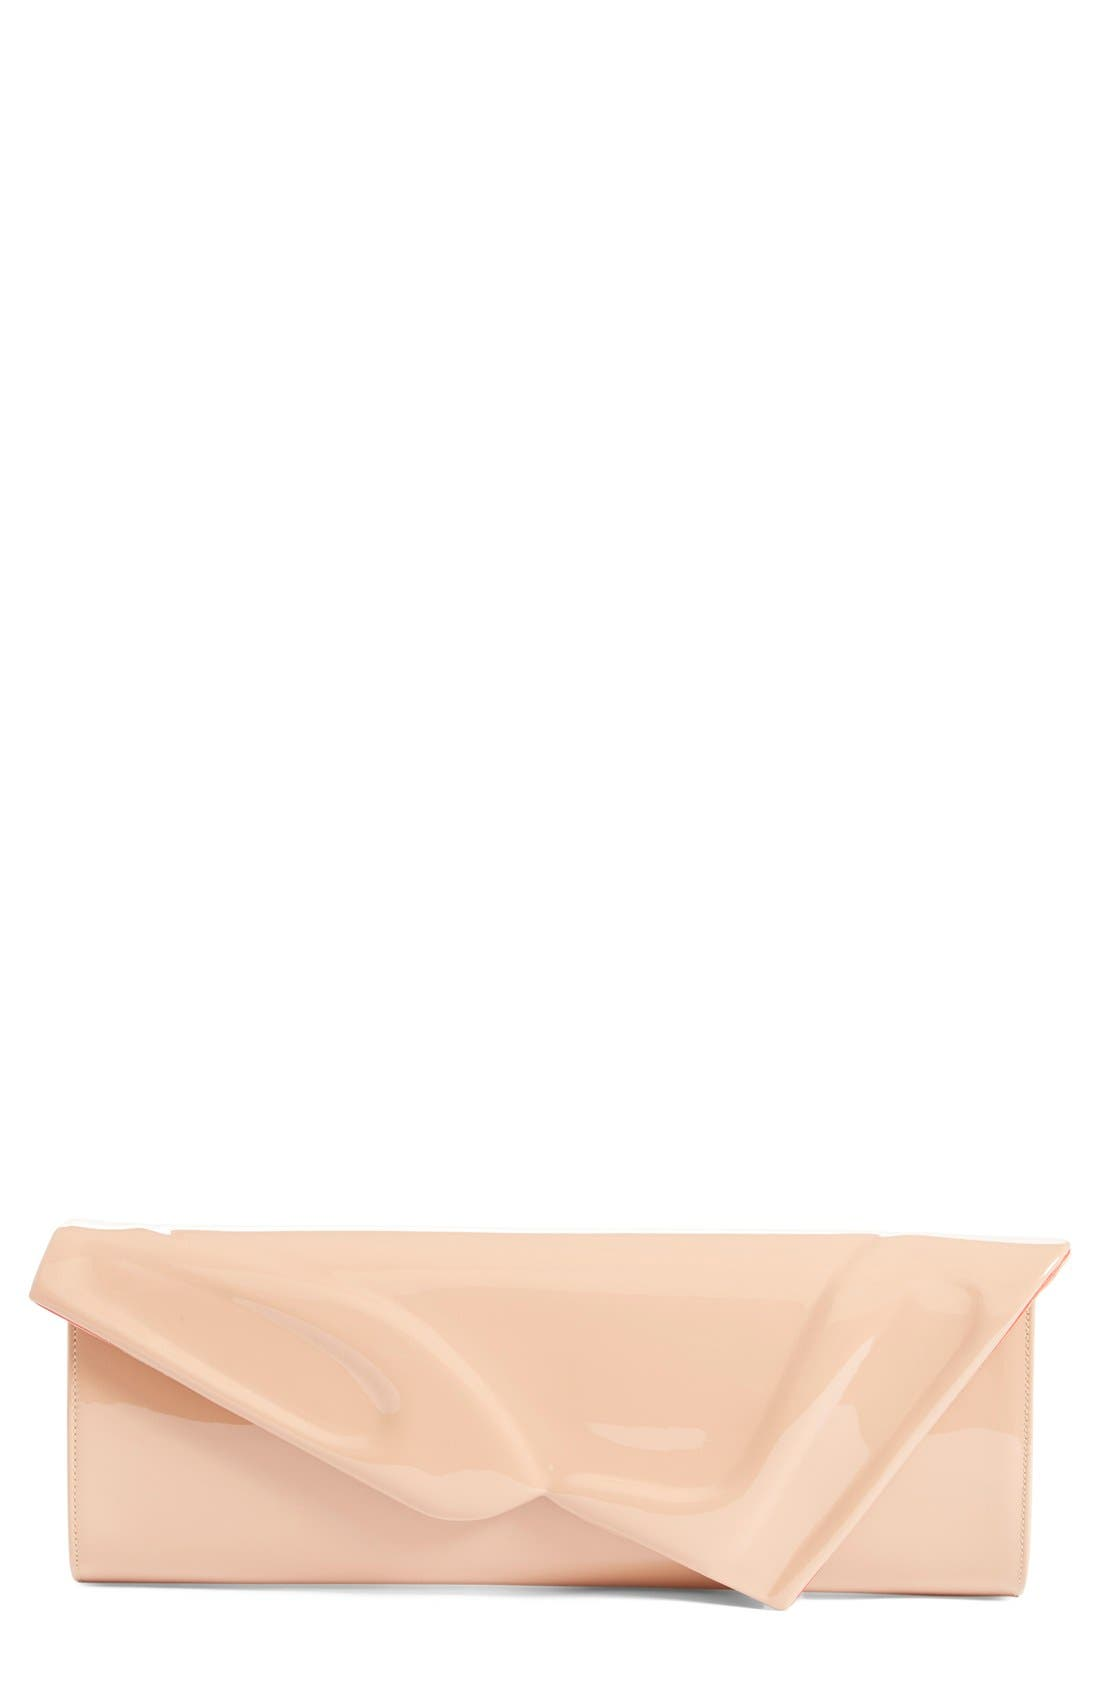 Alternate Image 1 Selected - Christian Louboutin 'So Kate' Patent Leather Clutch